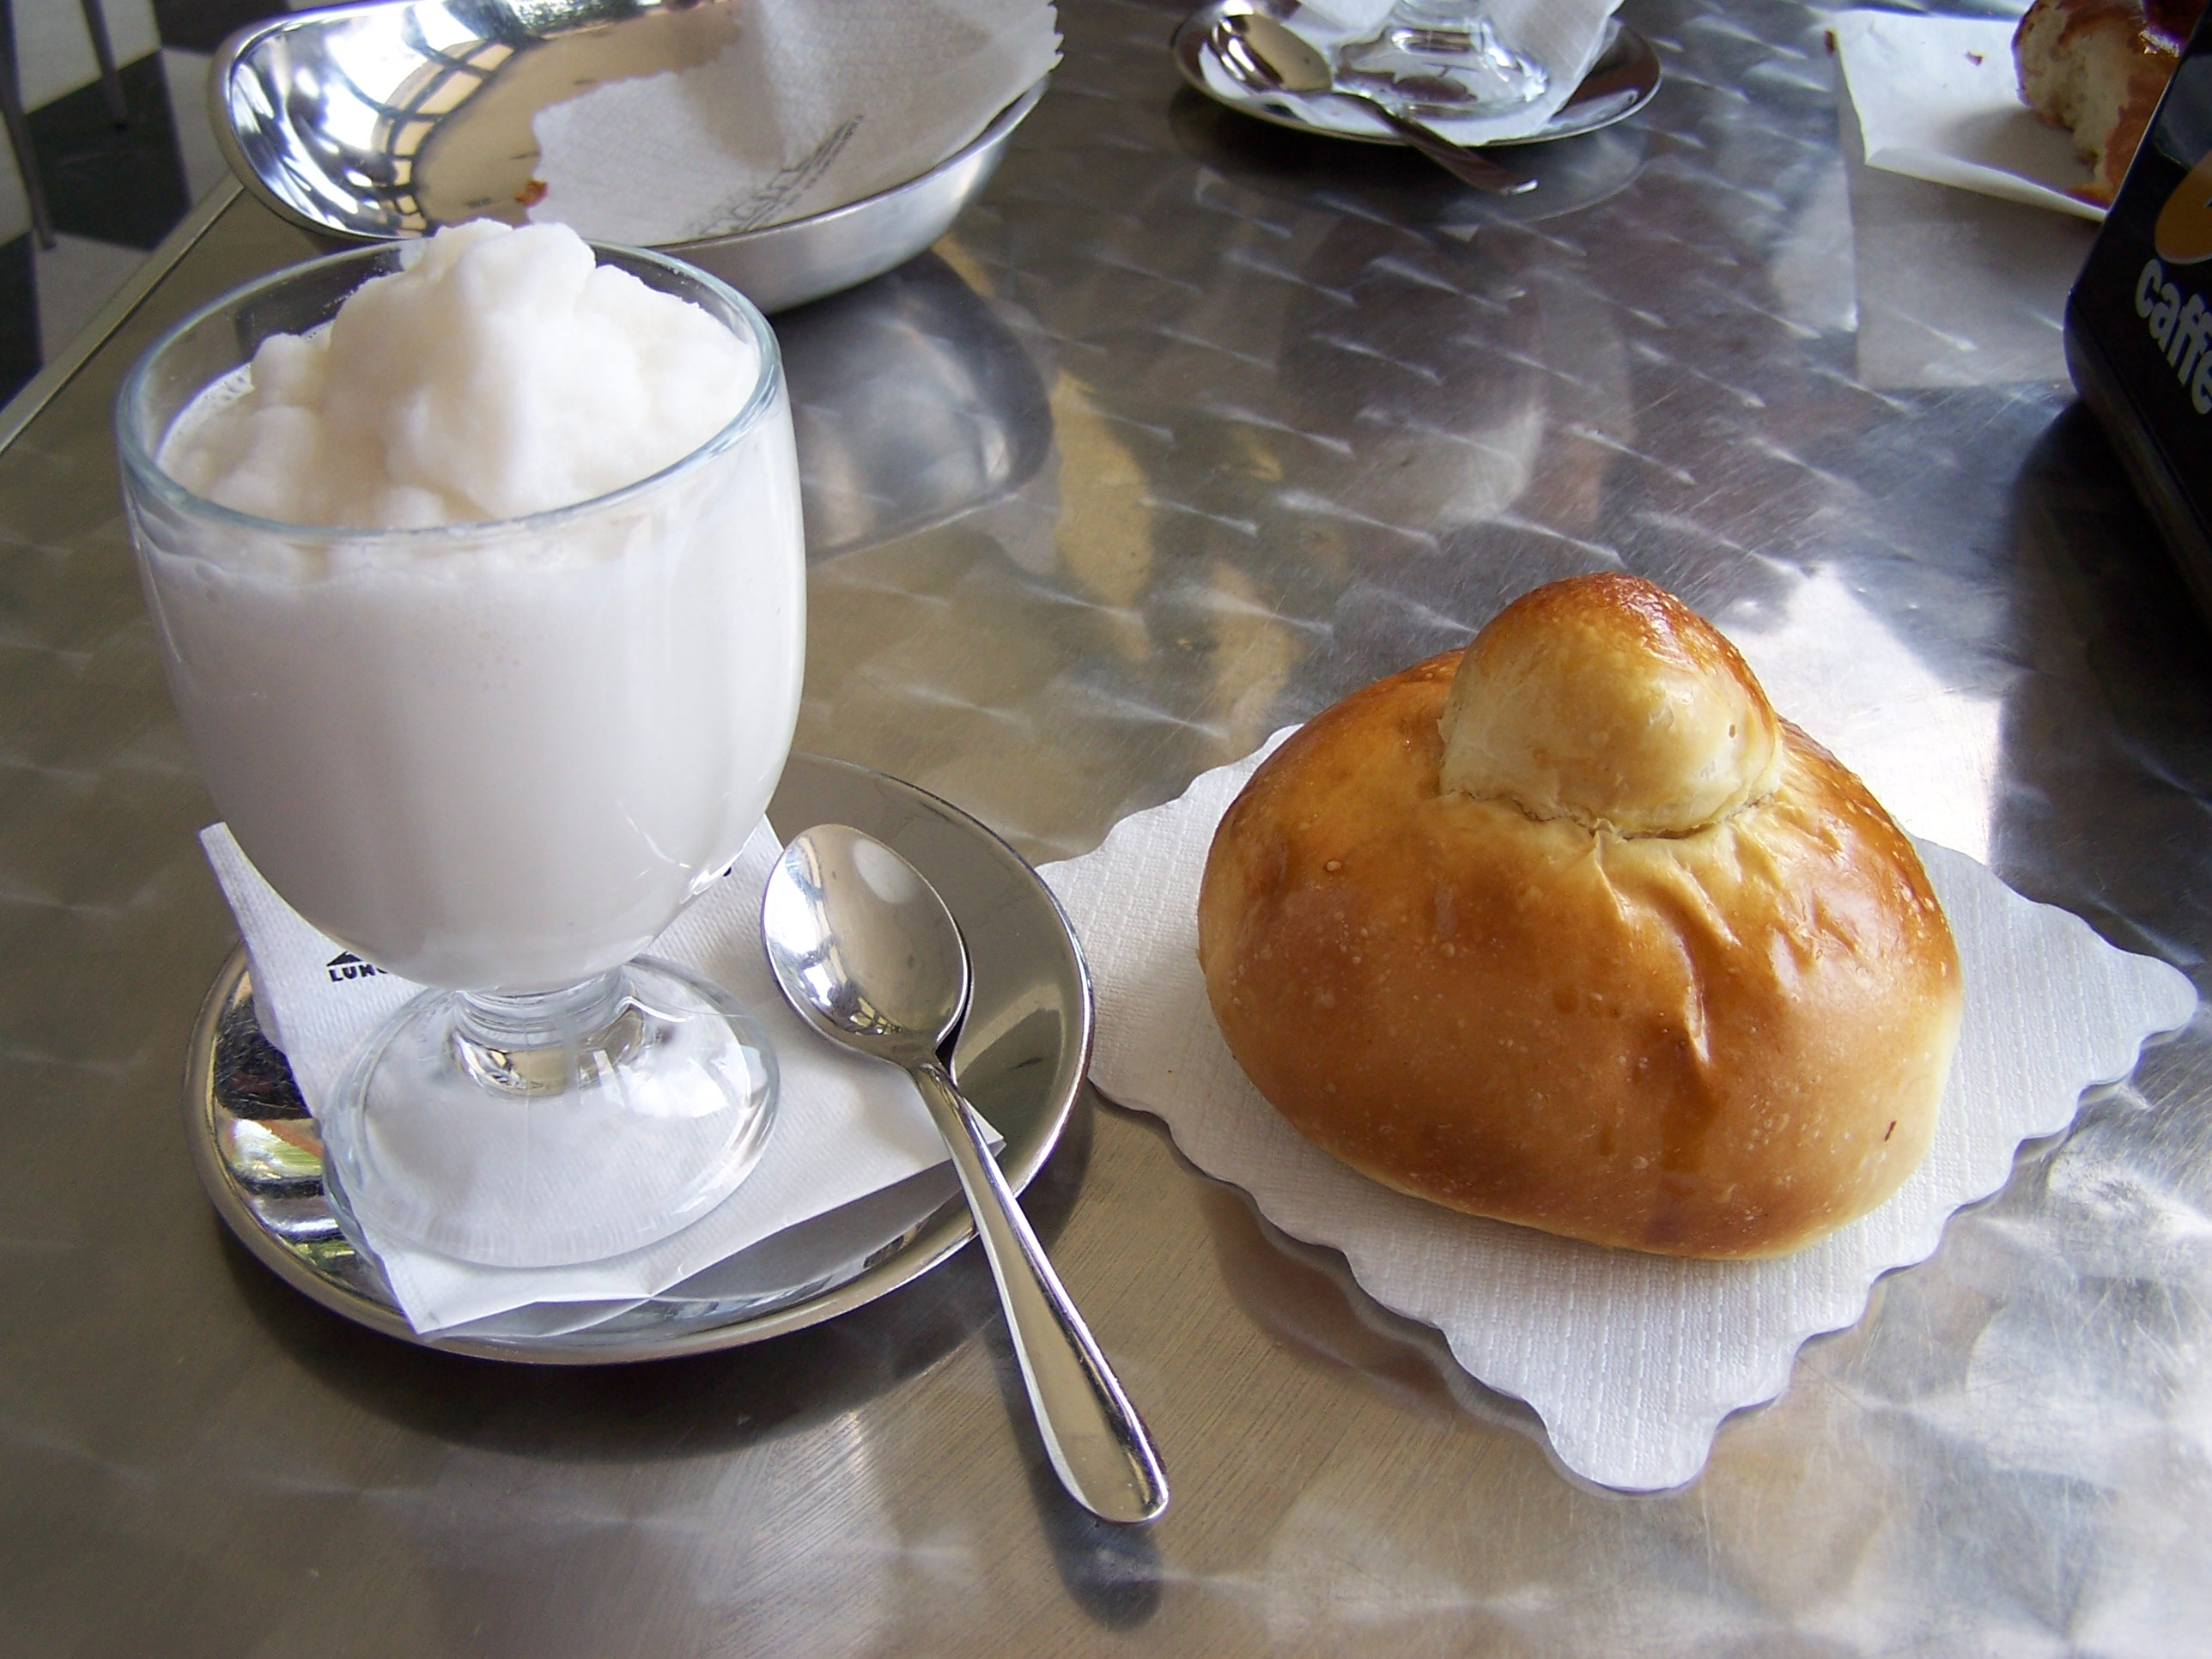 Granita with almonds and brioche